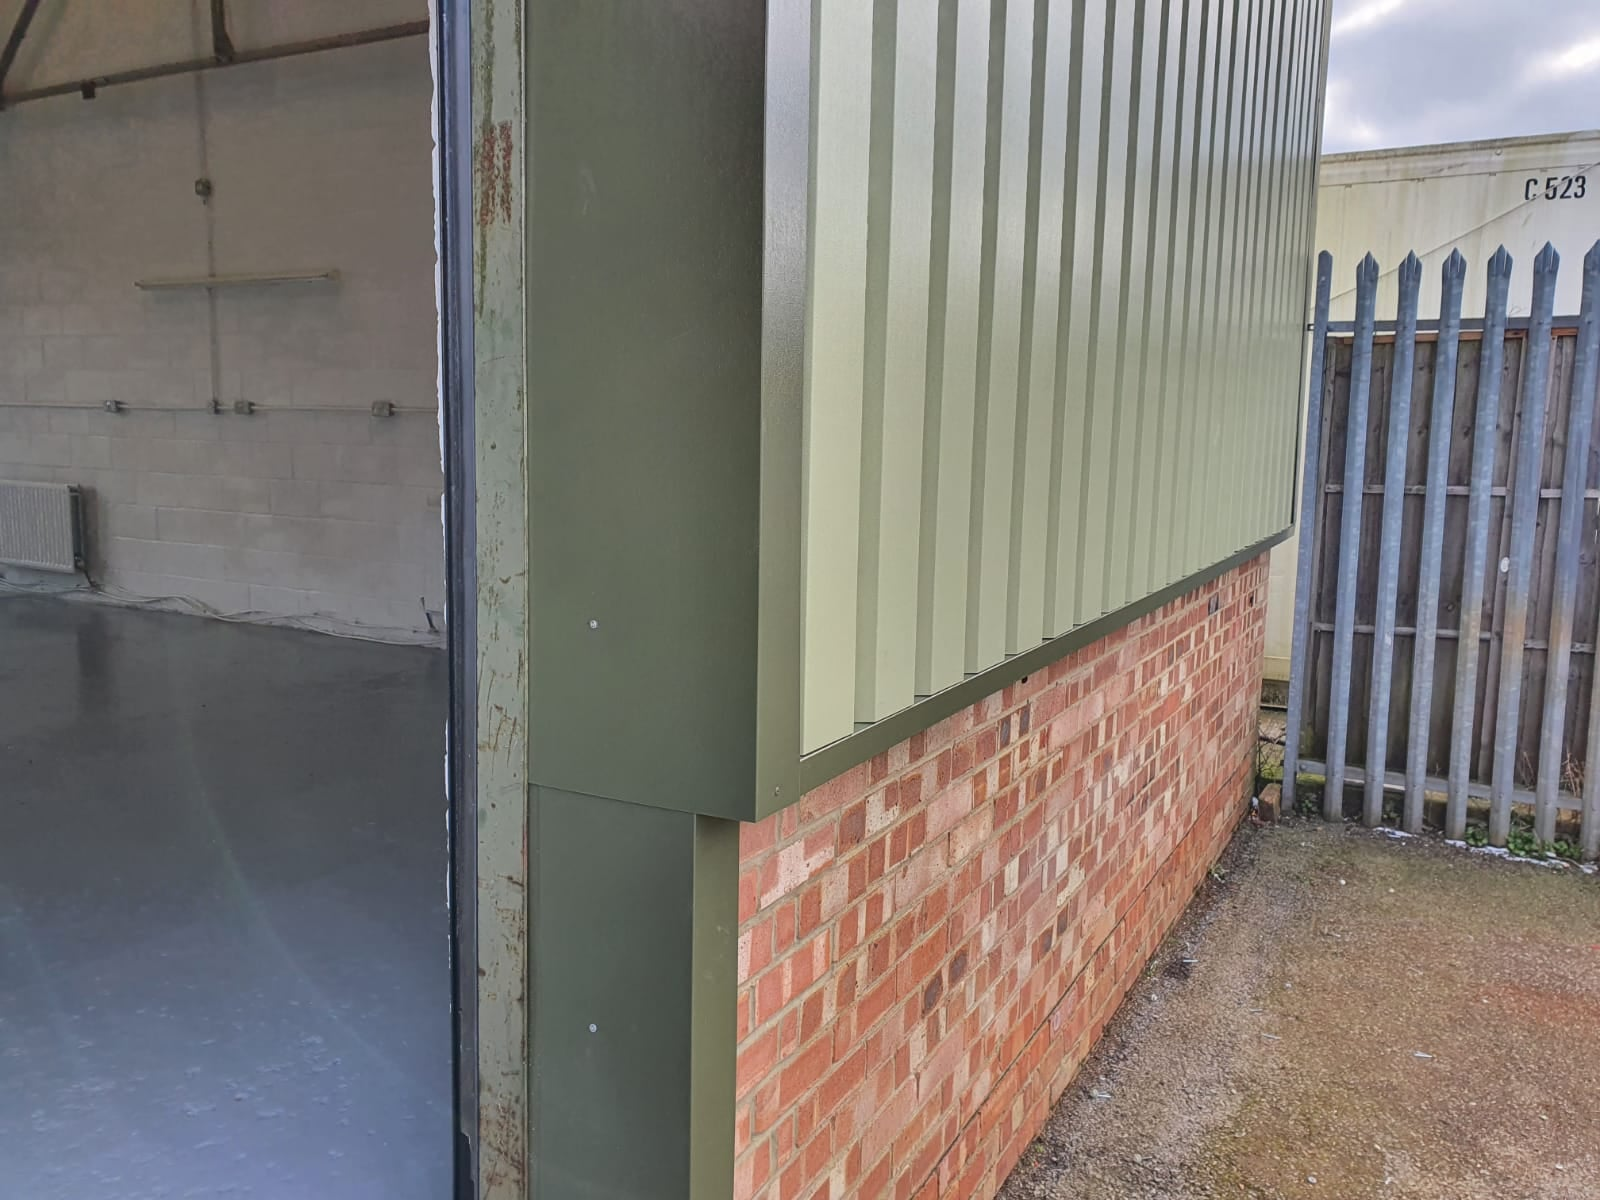 Vertical cladding repair to a warehouse in Burgess Hill West Sussex